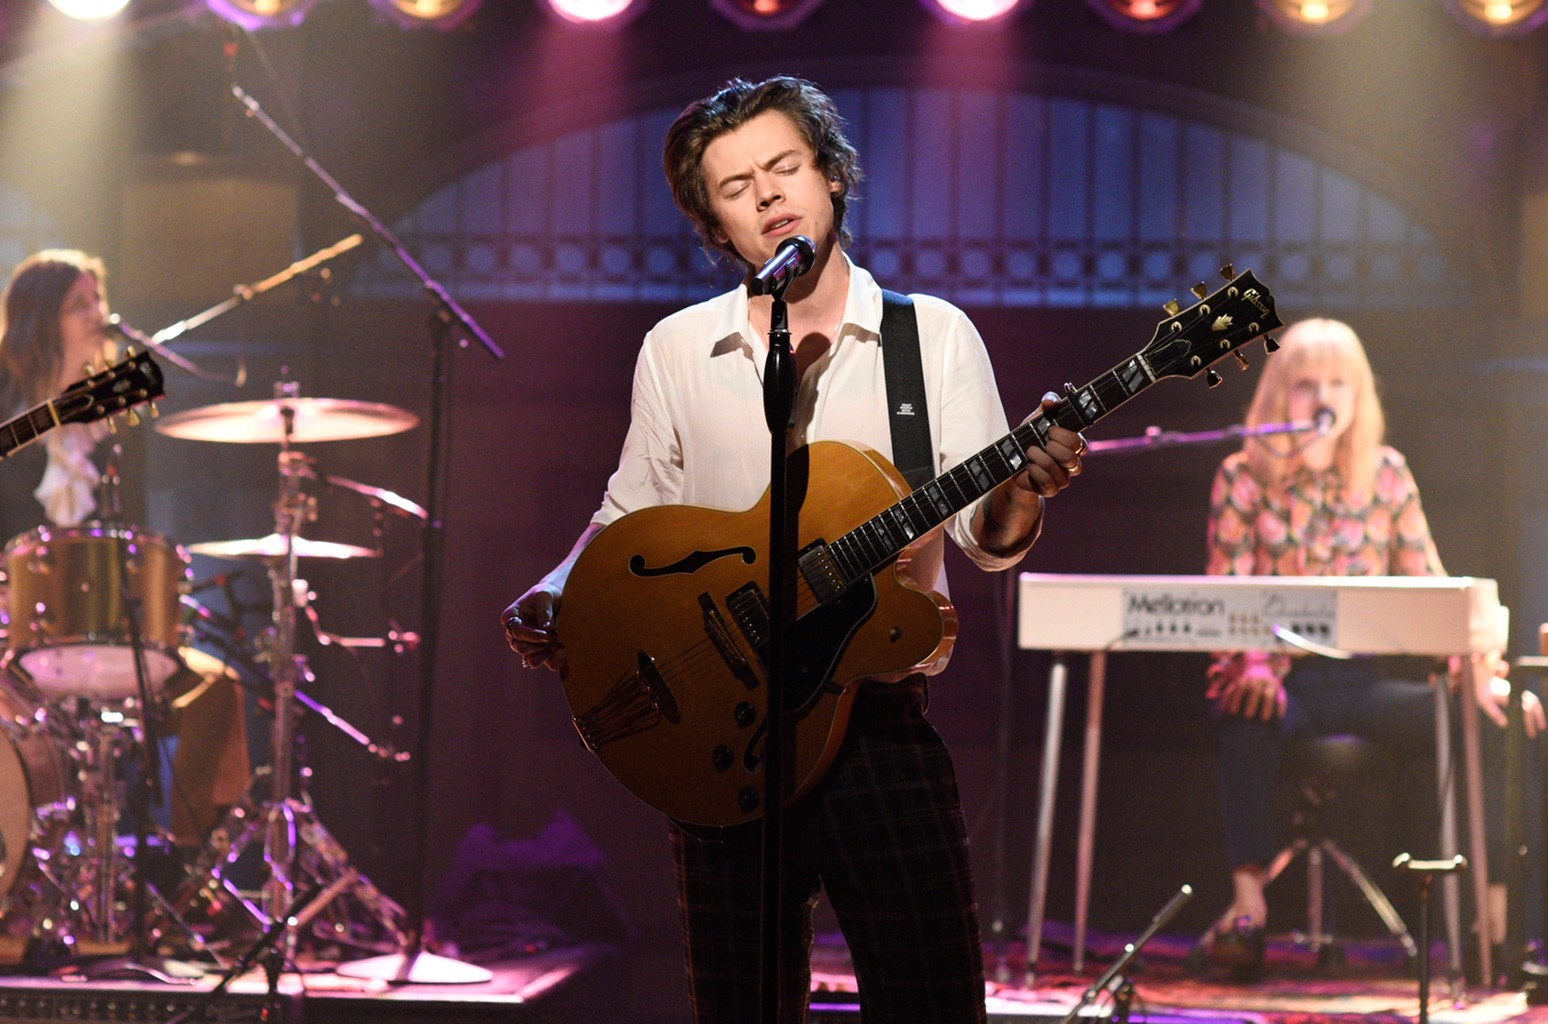 """Harry Styles performing """"Ever Since New York"""" on Saturday Night Live on April 15, 2017."""